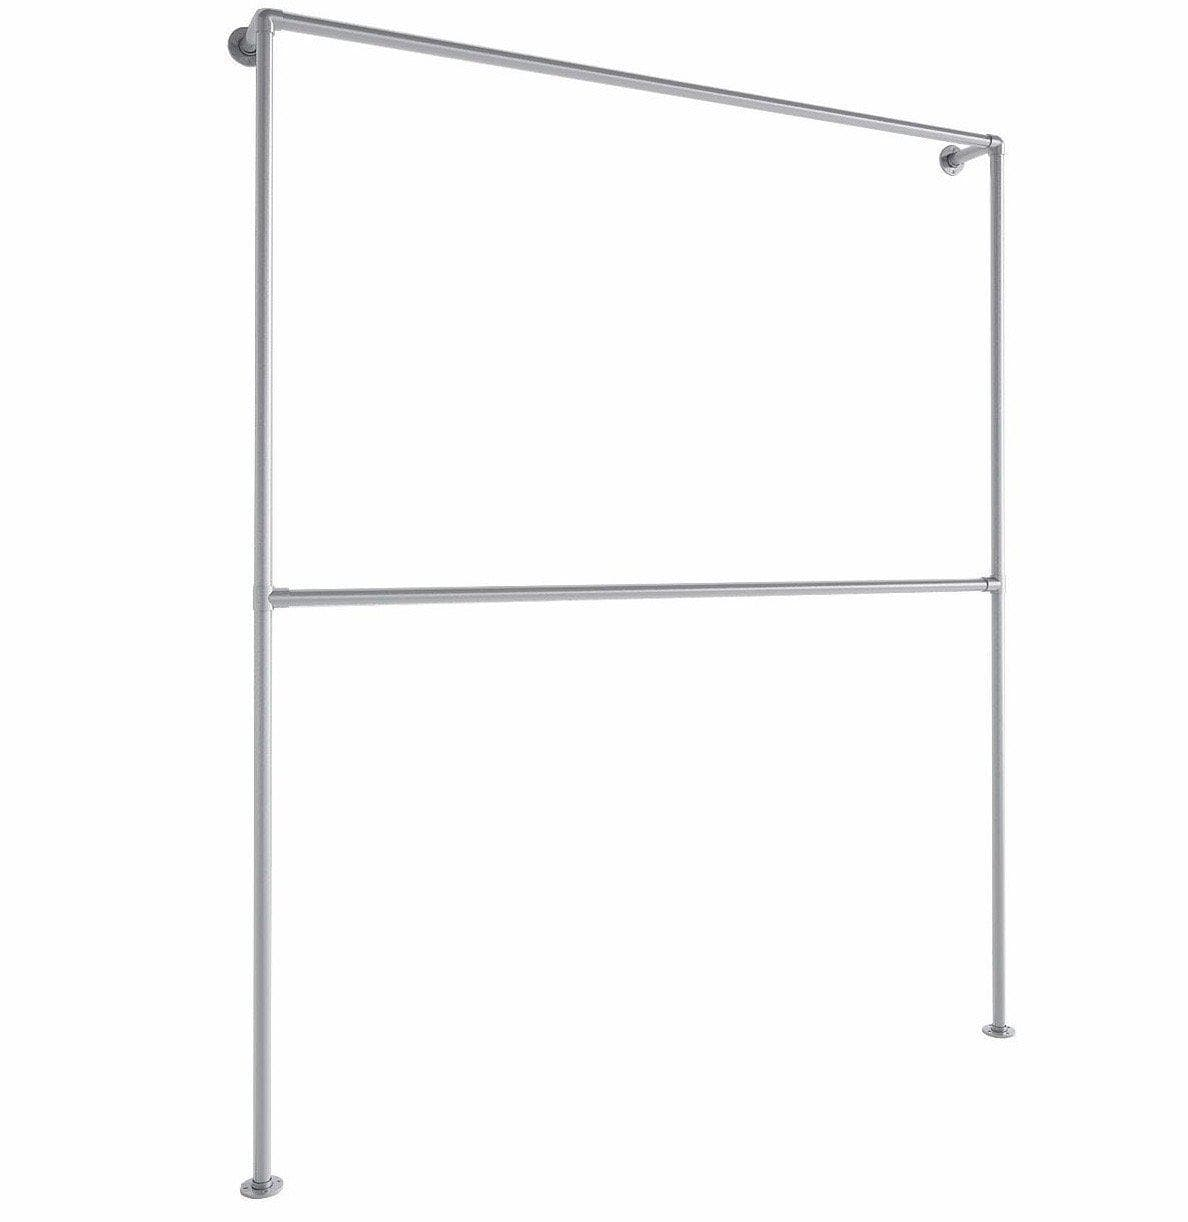 Ziito Clothes Rail Double Wall Tøjstativ